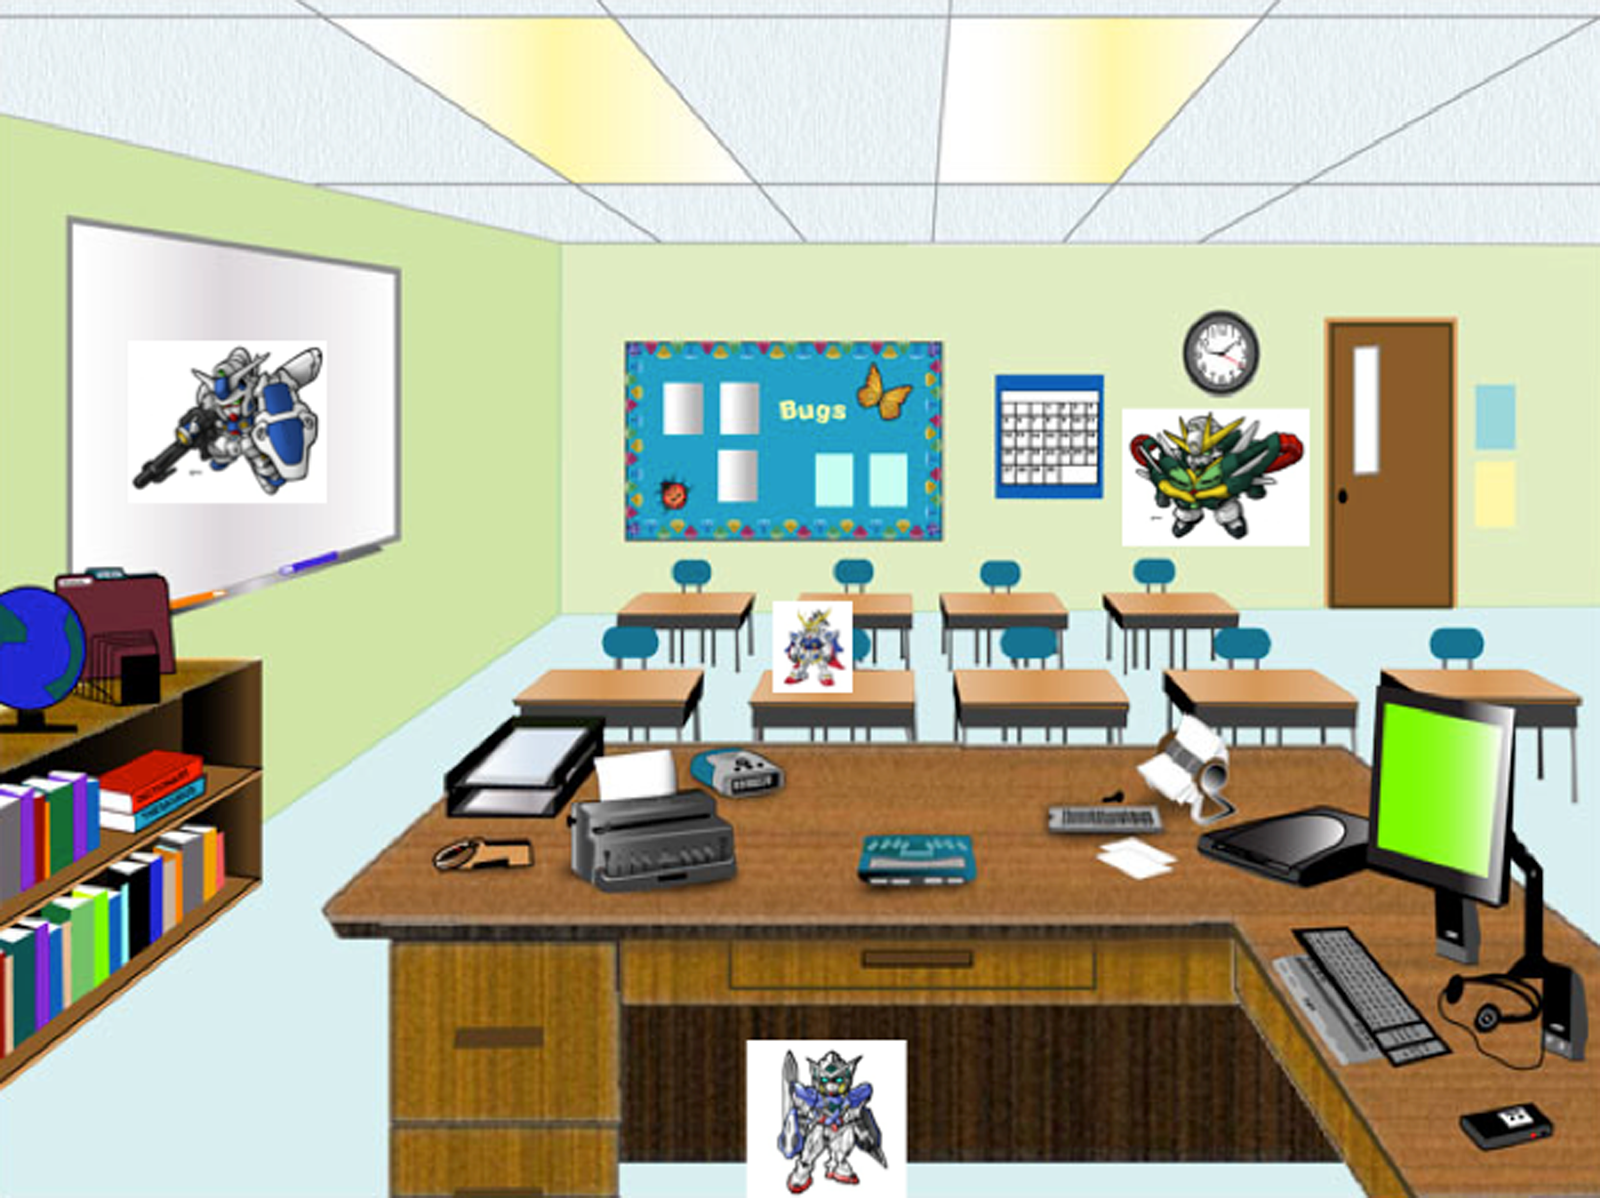 student 2 will get the picture of class of classroom with gundams